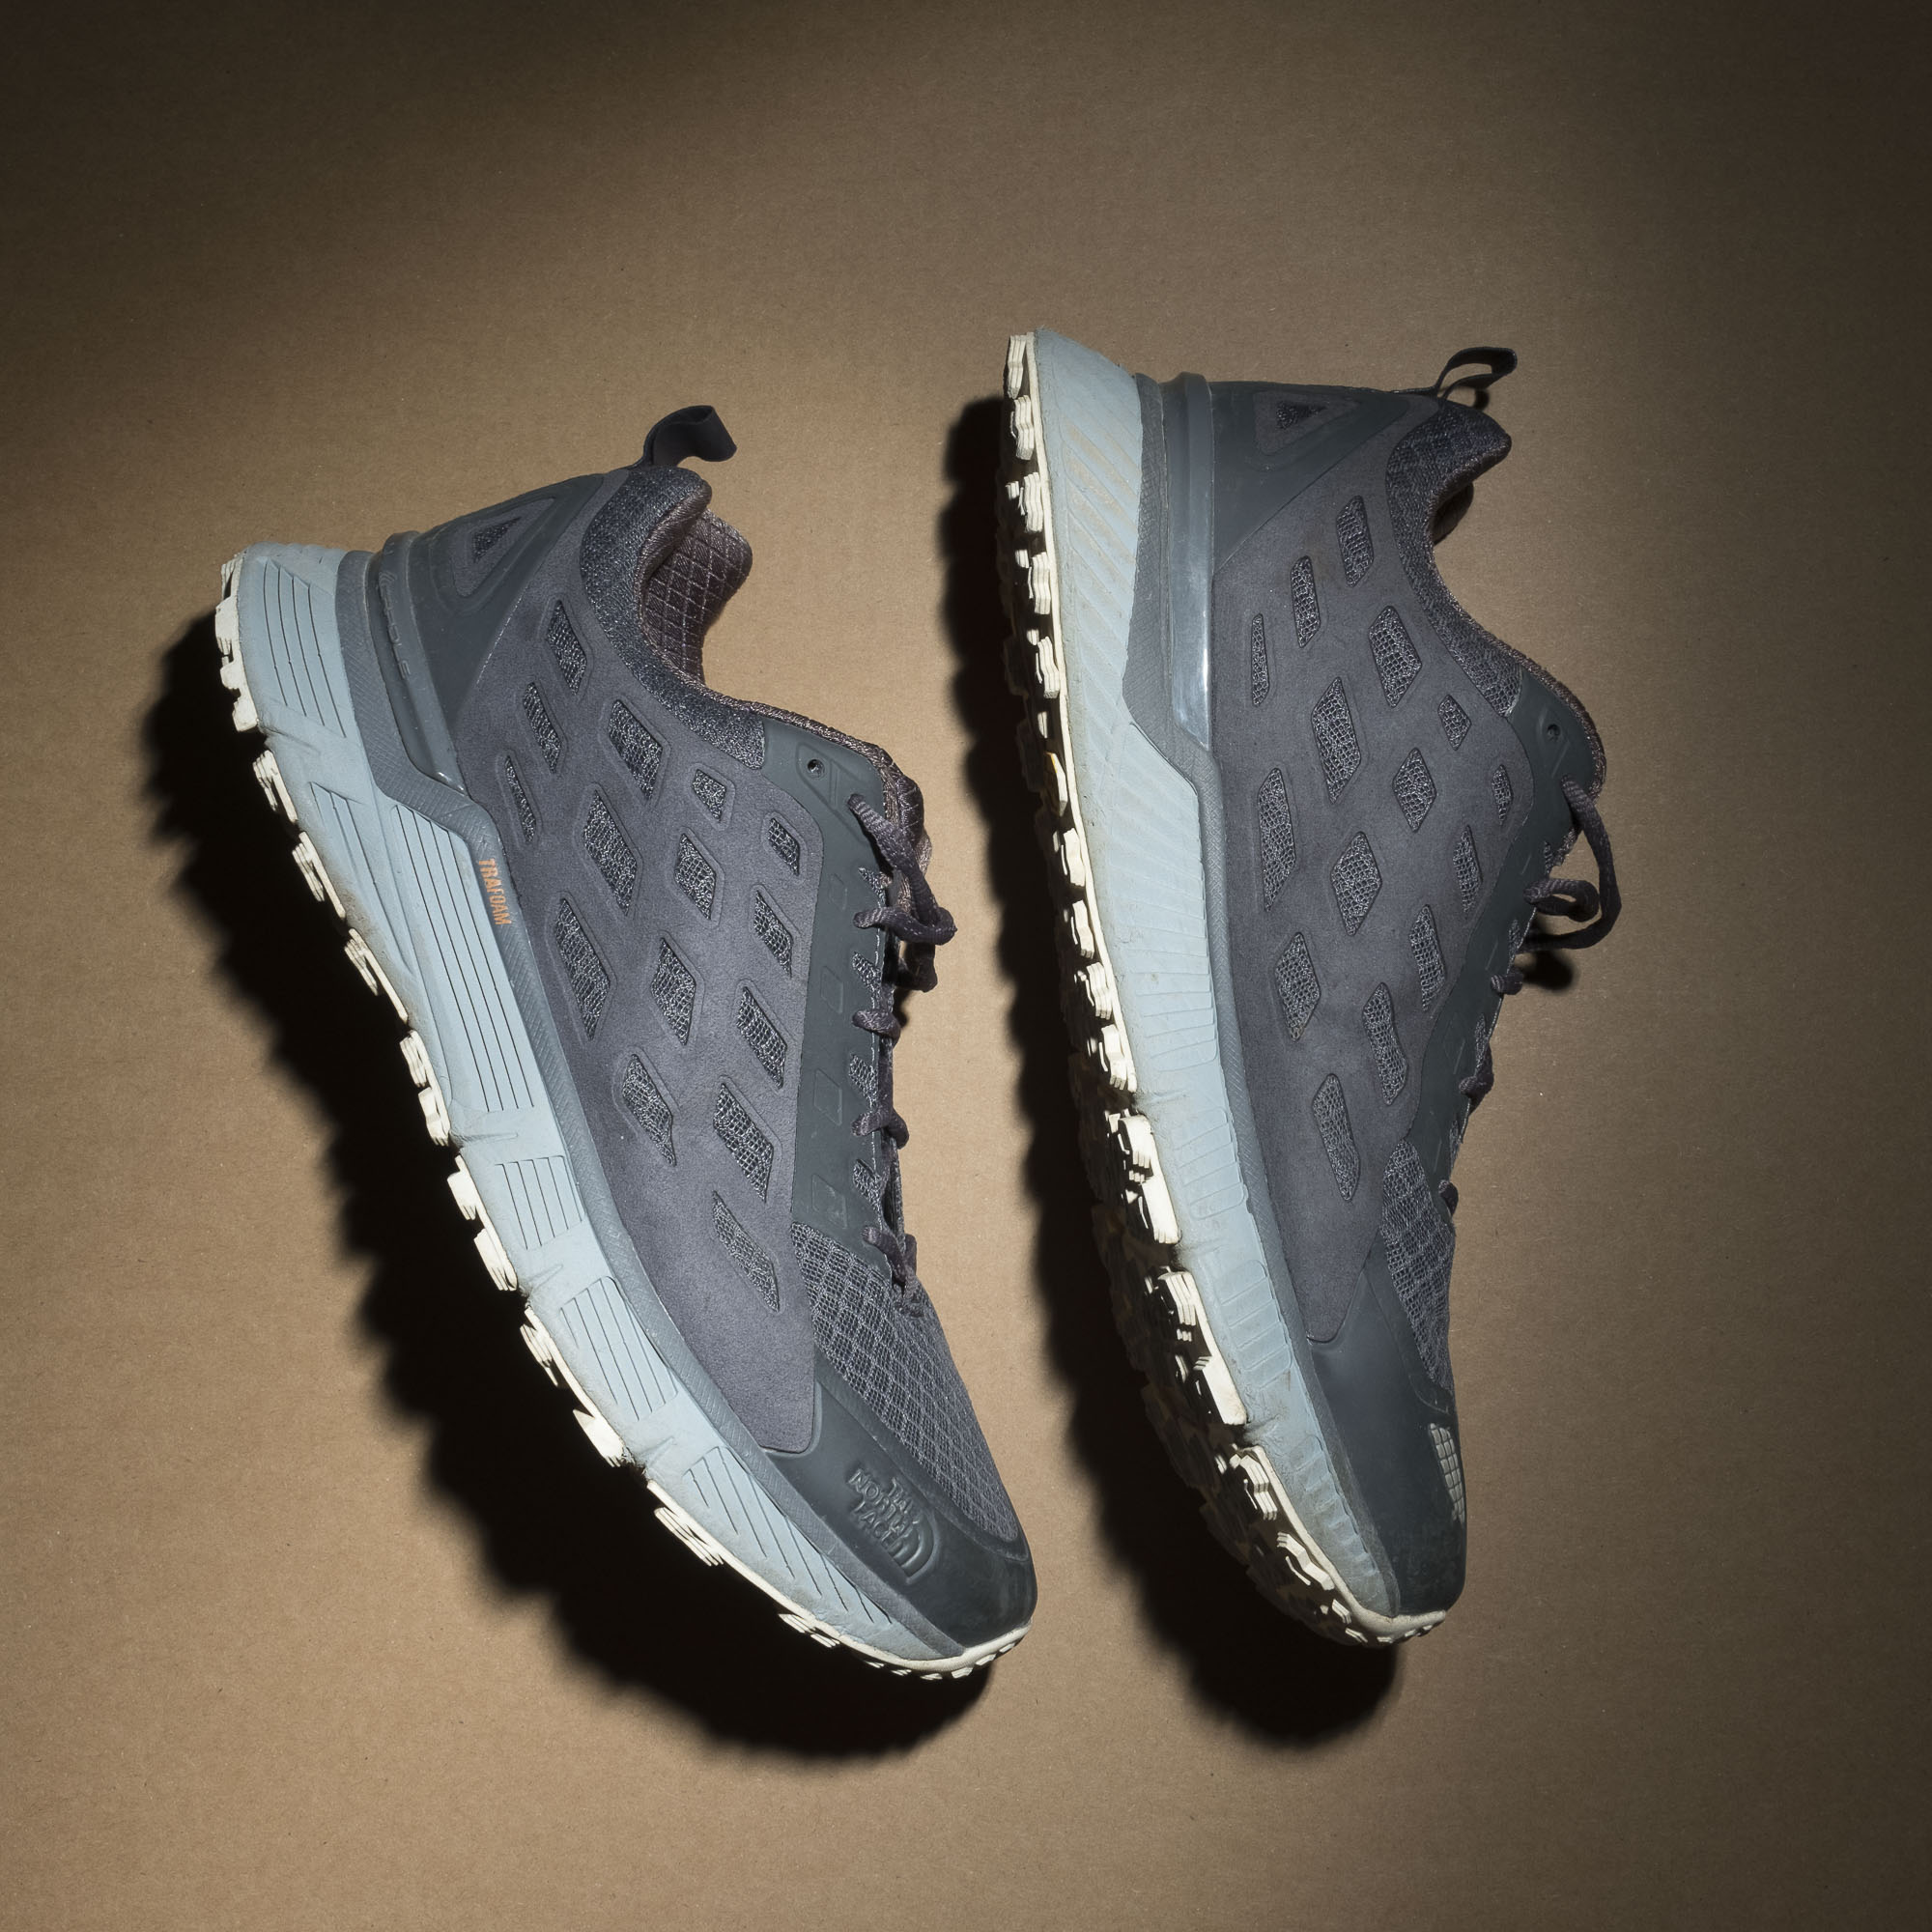 Men's Endurus TR footwear - product review - The North Face